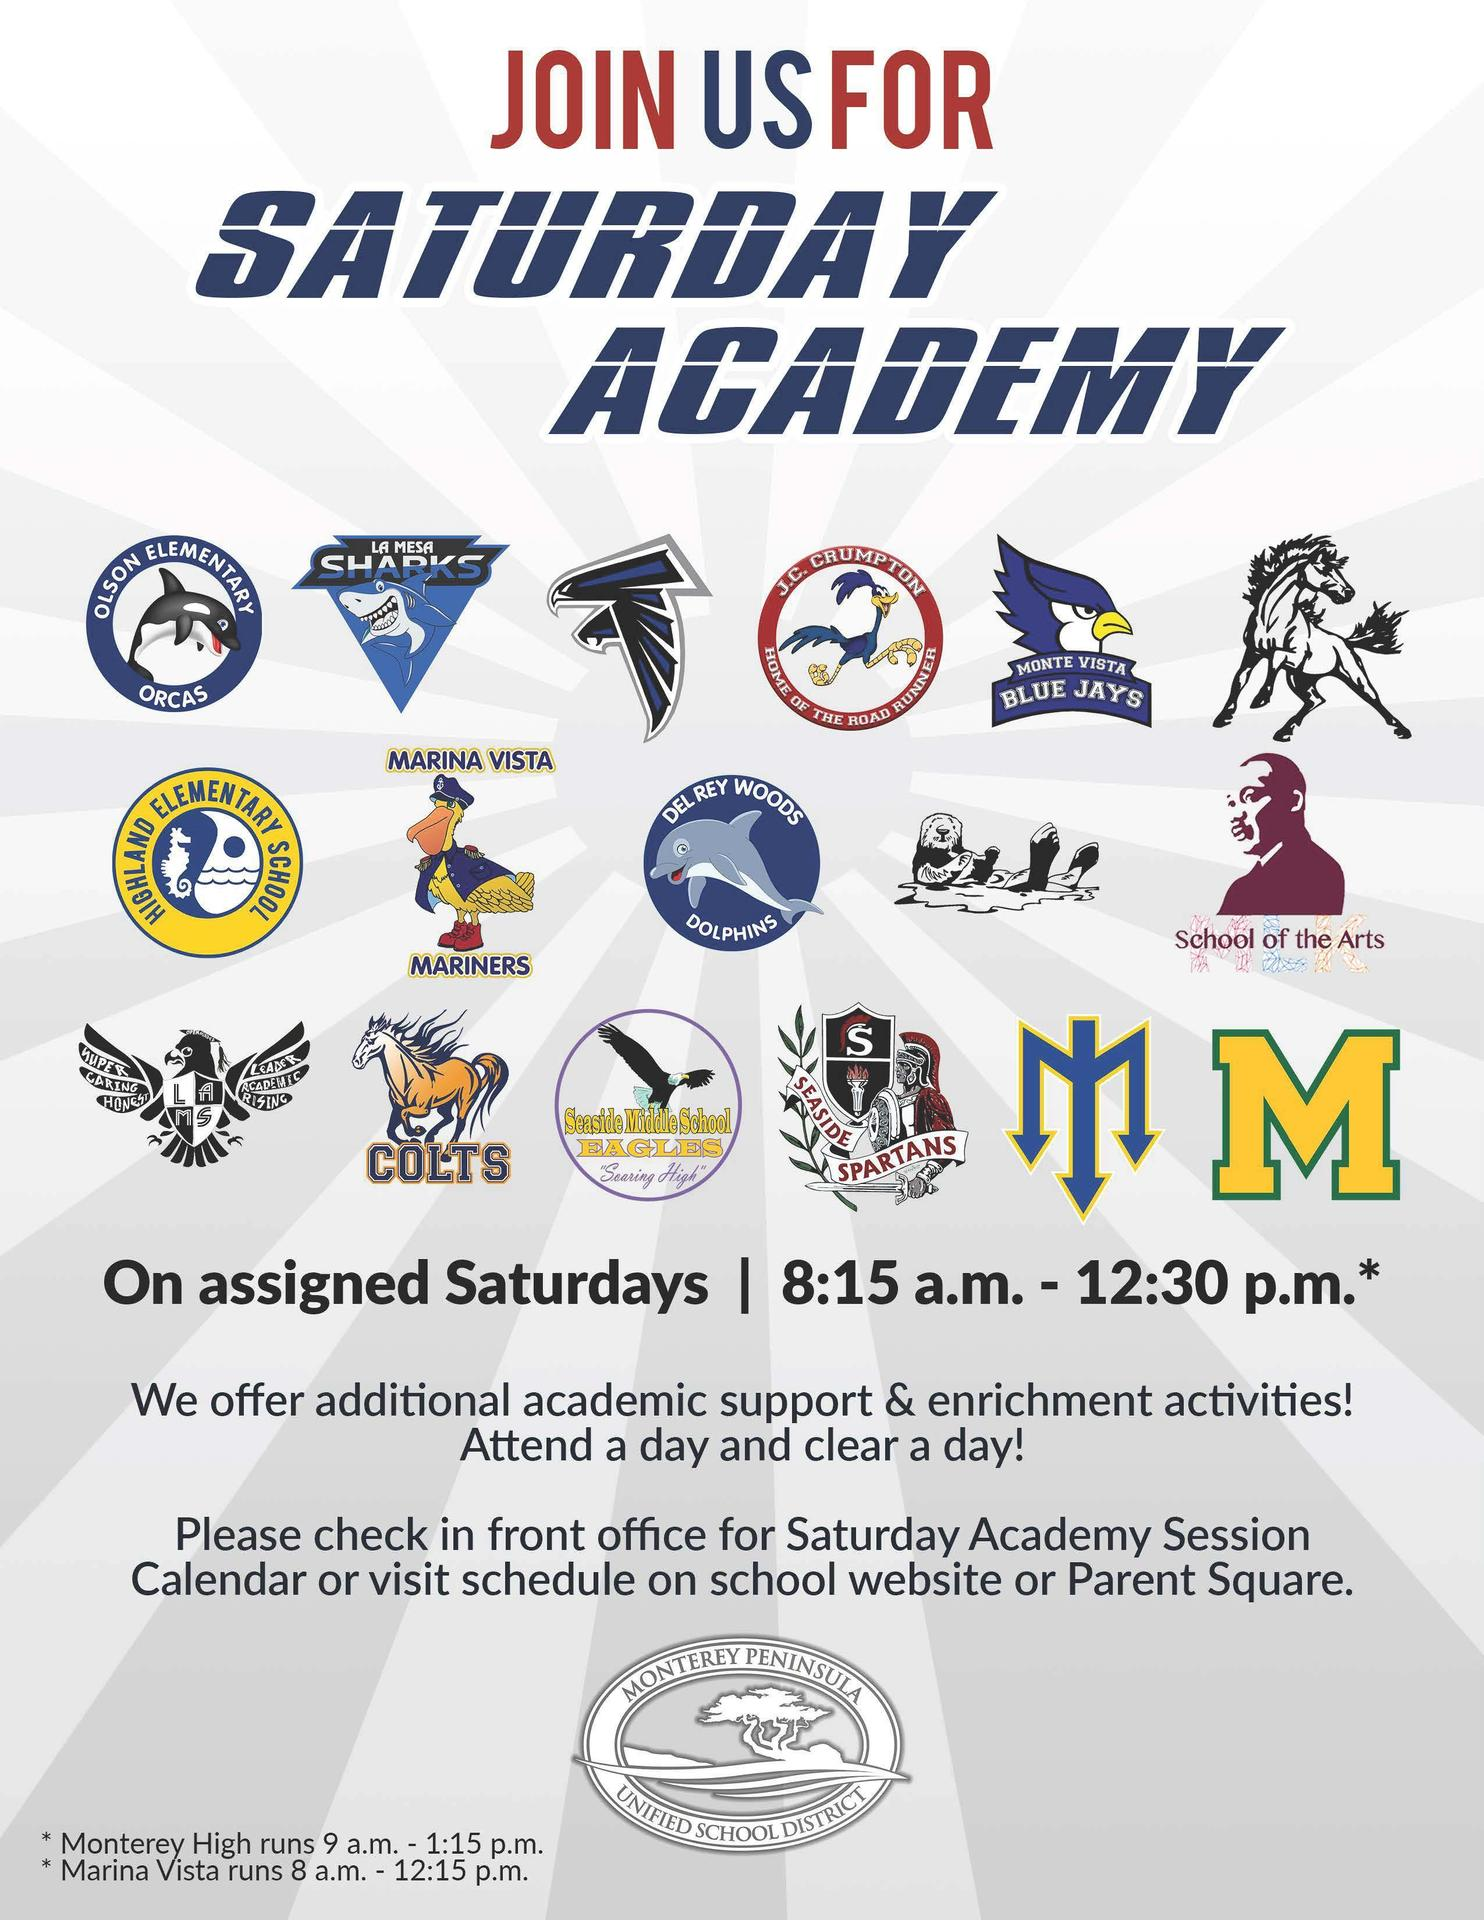 English Version of Saturday Academy Flyer